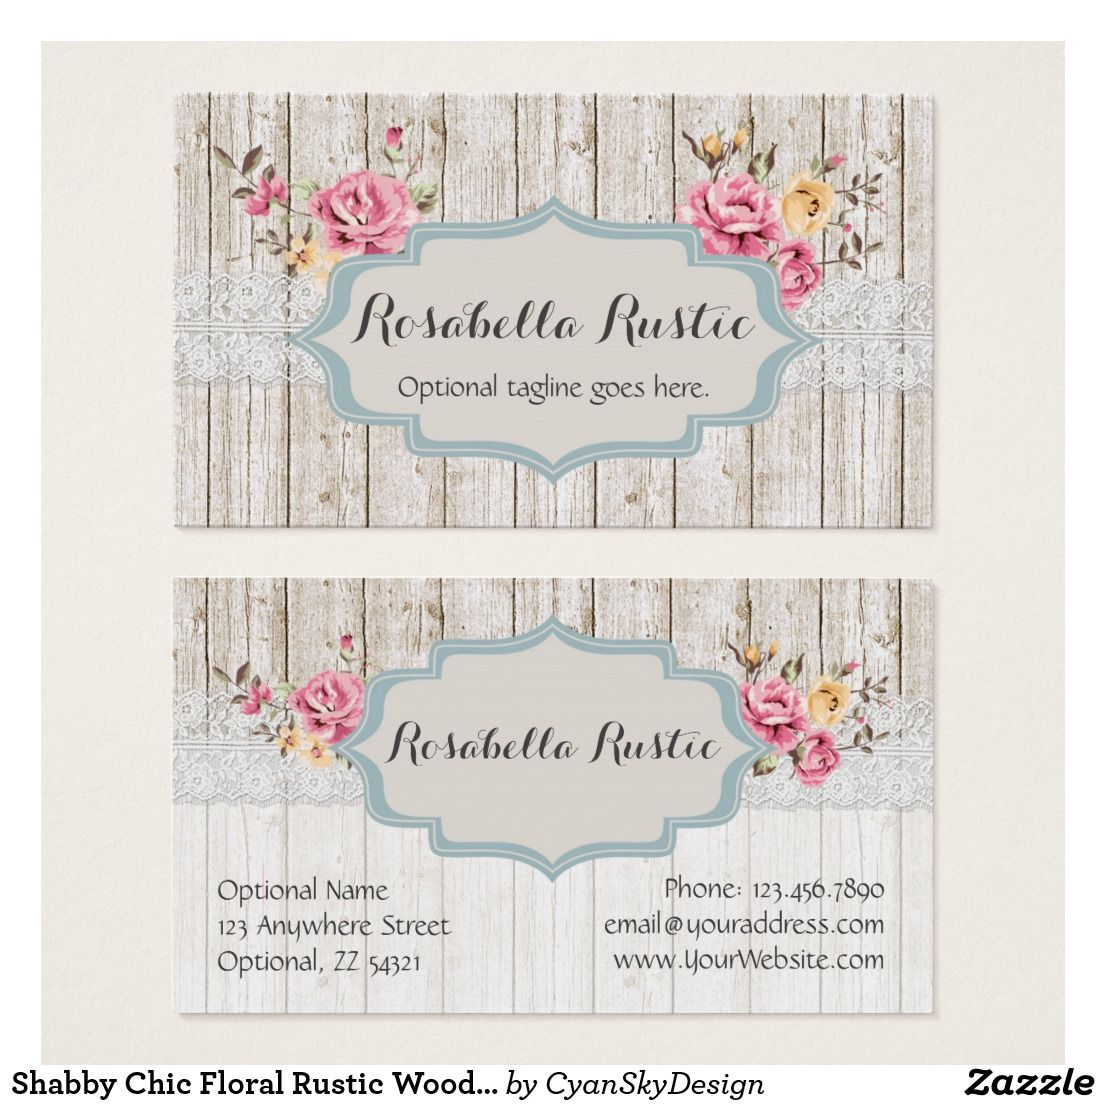 Shabby Chic Fl Rustic Wood Vintage Lace Business Card